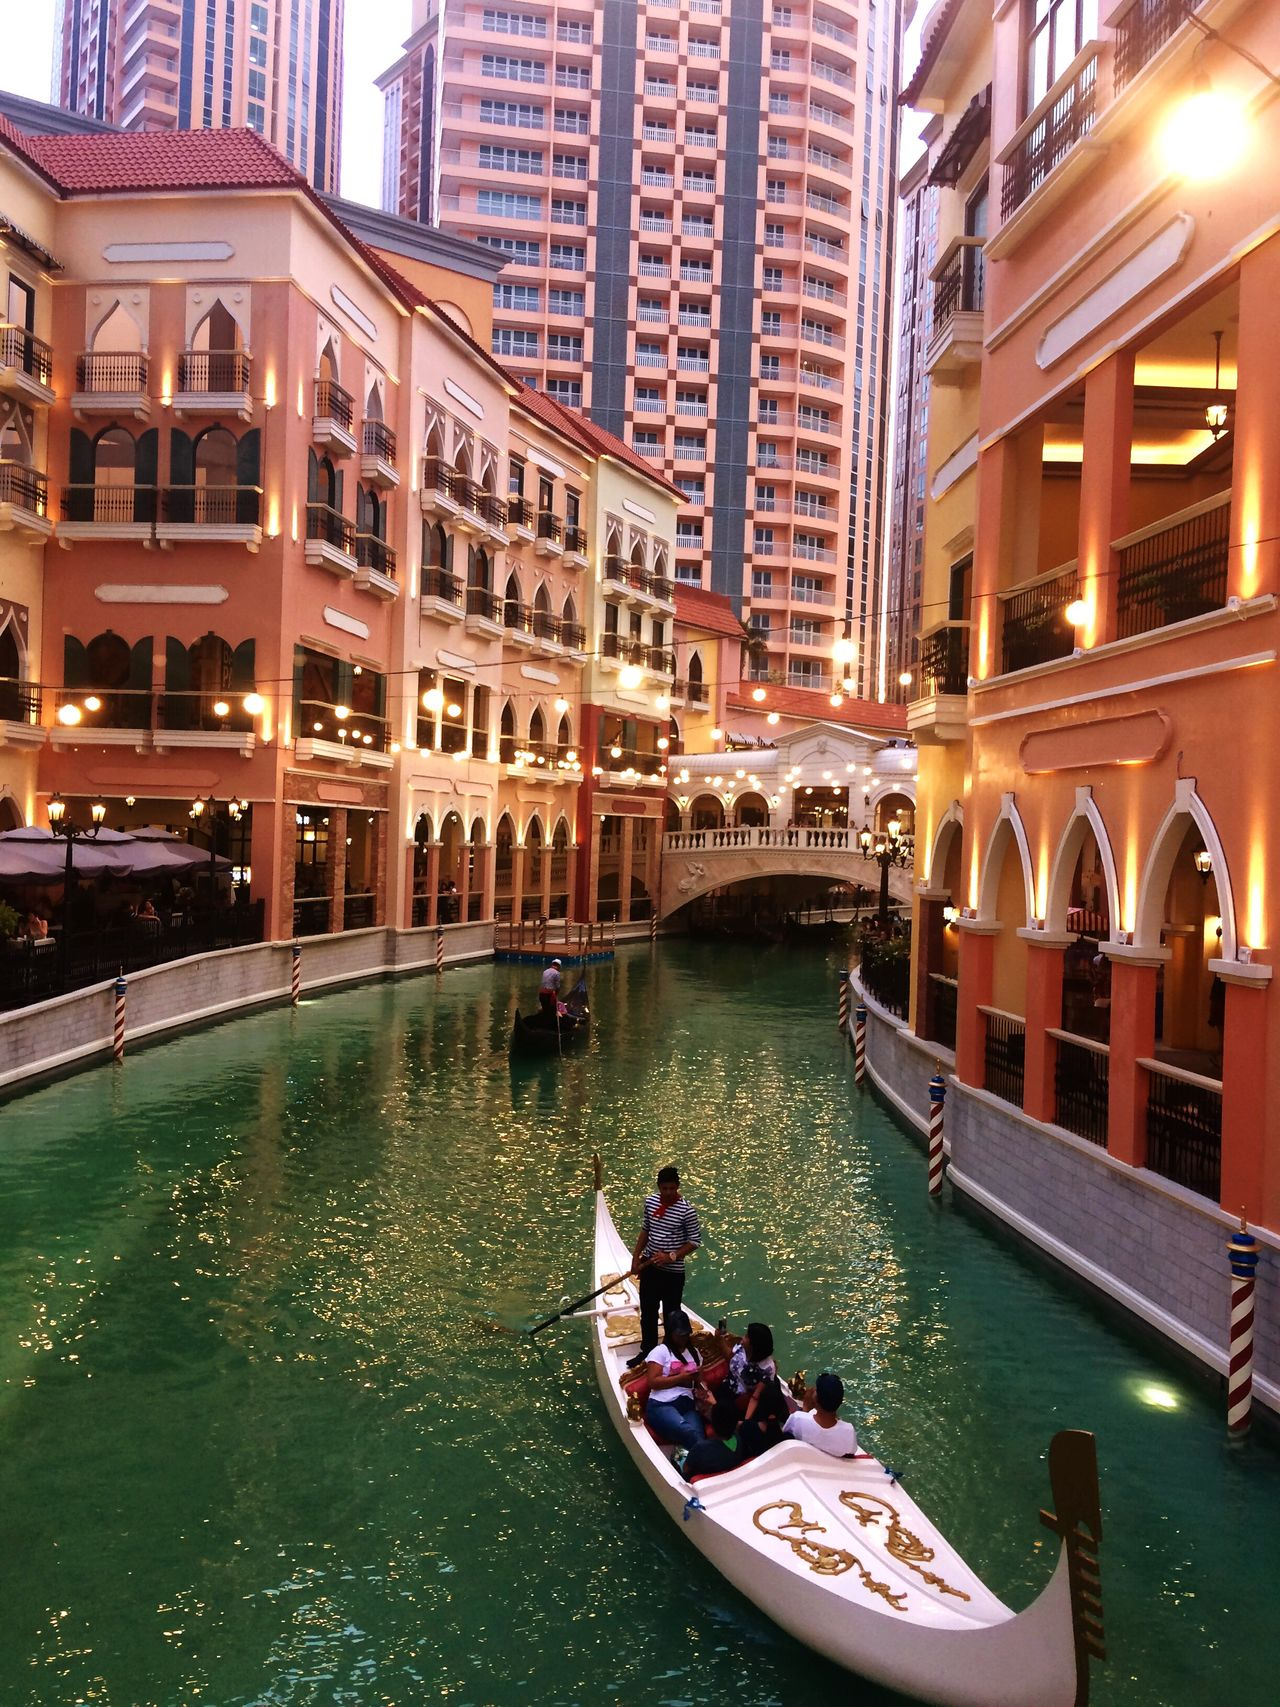 Makati City, Philippines Venice Lookalike Arts Culture And Entertainment Architecture Canal Gondolier Gondola - Traditional Boat Nautical Vessel Water Travel Destinations Rowing Vacay Family Time Philippines Romance Luxury Tourism Adventure